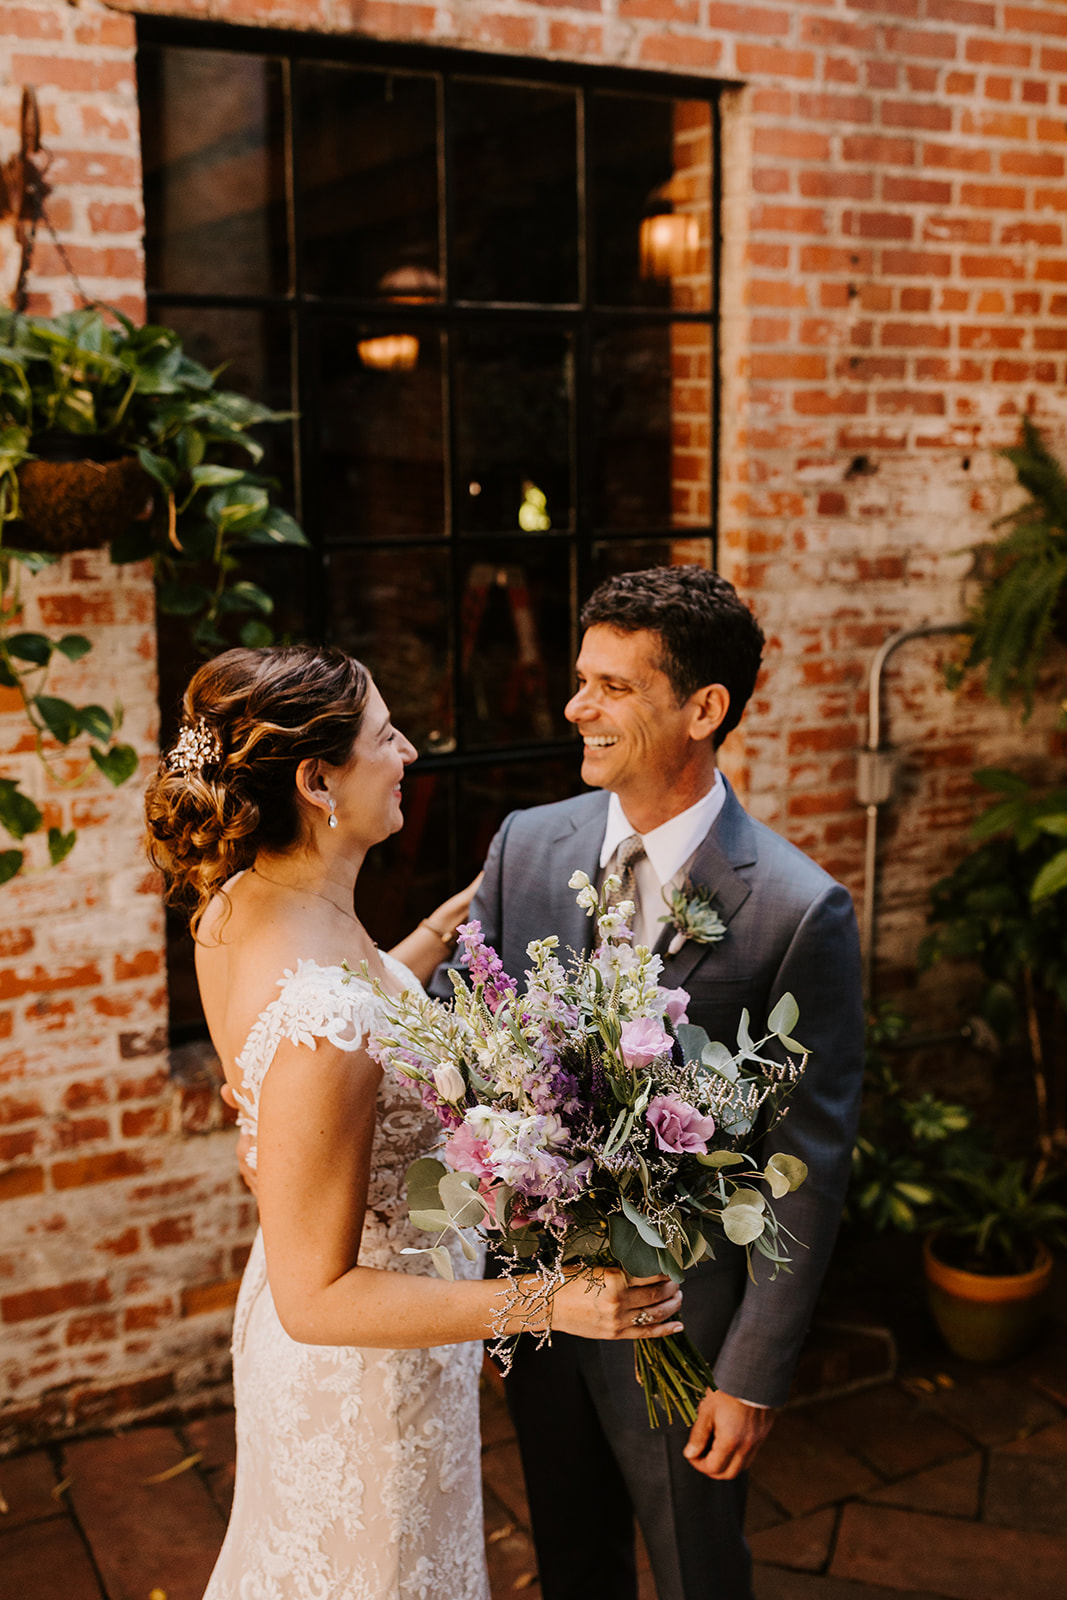 Carondelet House Wedding in Downtown Los Angeles | Los Angeles Wedding Photographer |Tida Svy Photography | www.tidasvy.com